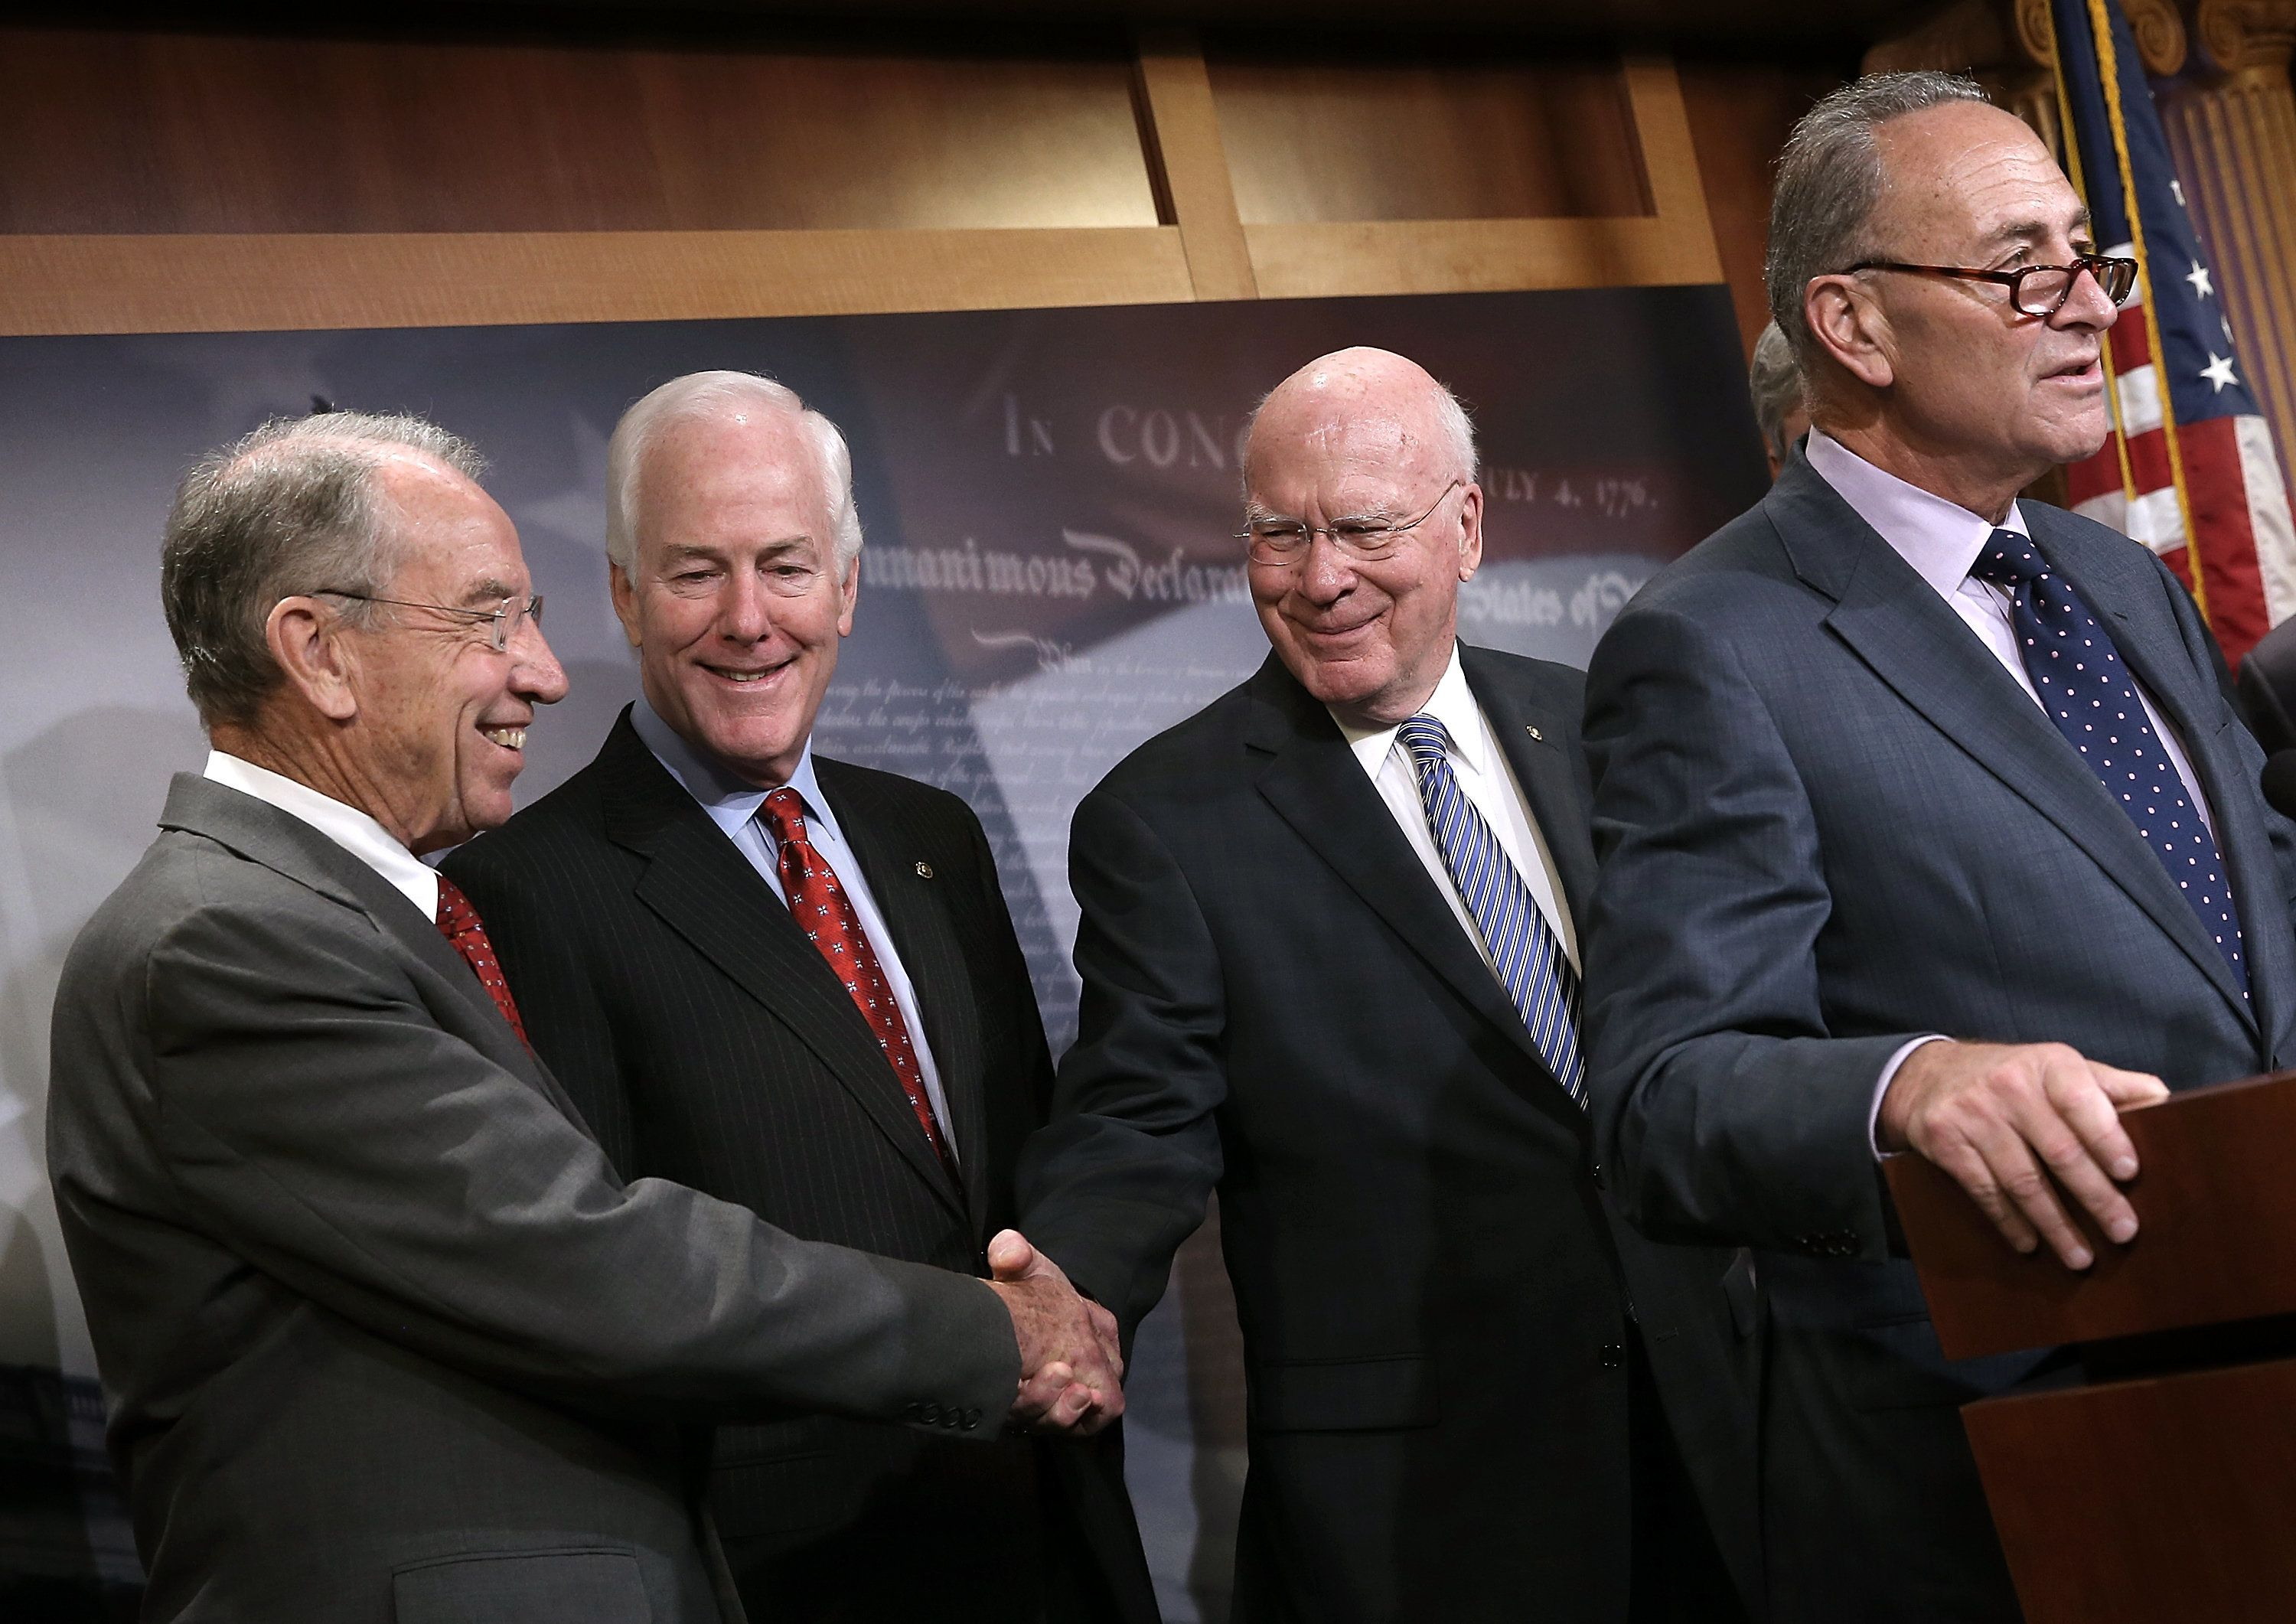 WASHINGTON, DC - OCTOBER 01:  Senate Judiciary Committee Chairman Sen. Chuck Grassley (L) (R-IA) shakes hands with ranking member Sen. Patrick Leahy (2nd R) (D-VT) during a press conference at the U.S. Capitol announcing a bipartisan effort to reform the criminal justice system October 1, 2015 in Washington, DC. A bipartisan group of senators led by Grassley and Assistant Democratic Leader Dick Durbin (D-IL) is introducing legislation aimed at restructuring prison sentences for certain drug offenders, targeting violent criminals, and granting judges greater discretion at sentencing in lower-level drug crimes. Also pictured are Sen. John Cornyn (2nd L) (R-TX) and Sen. Chuck Schumer (R) (D-NY).  (Photo by Win McNamee/Getty Images)